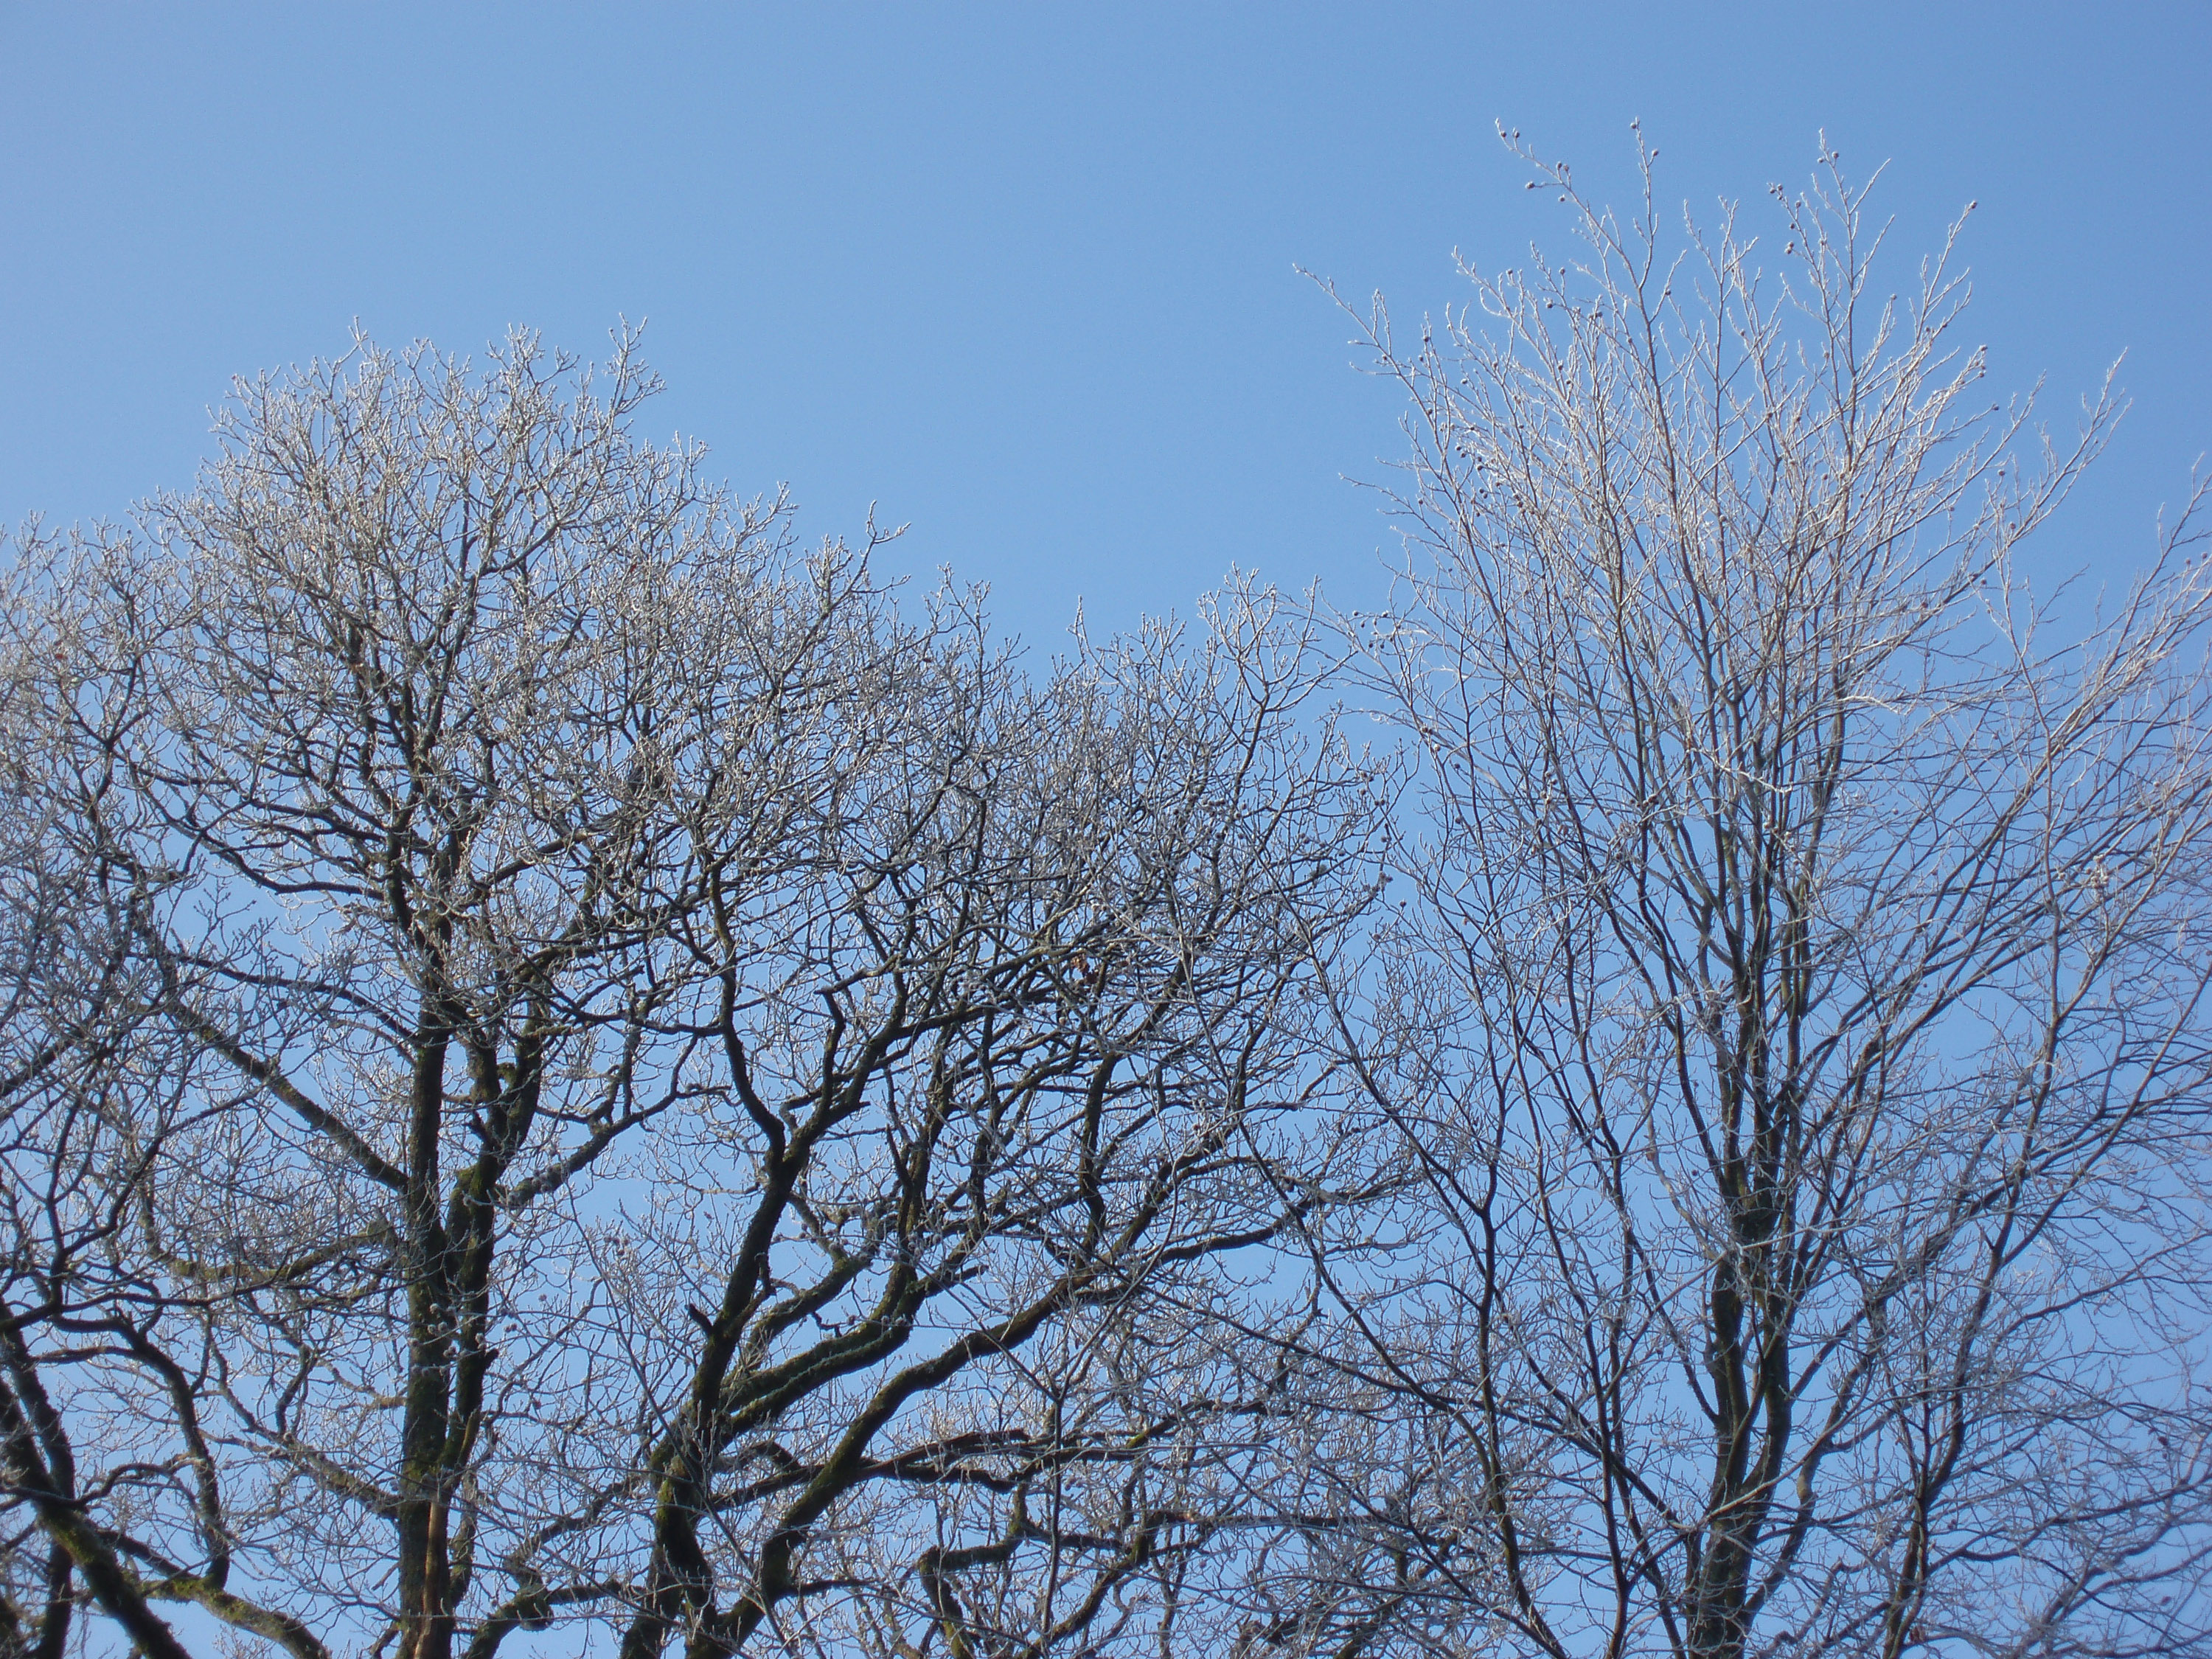 a row of winter trees crovered in white frost